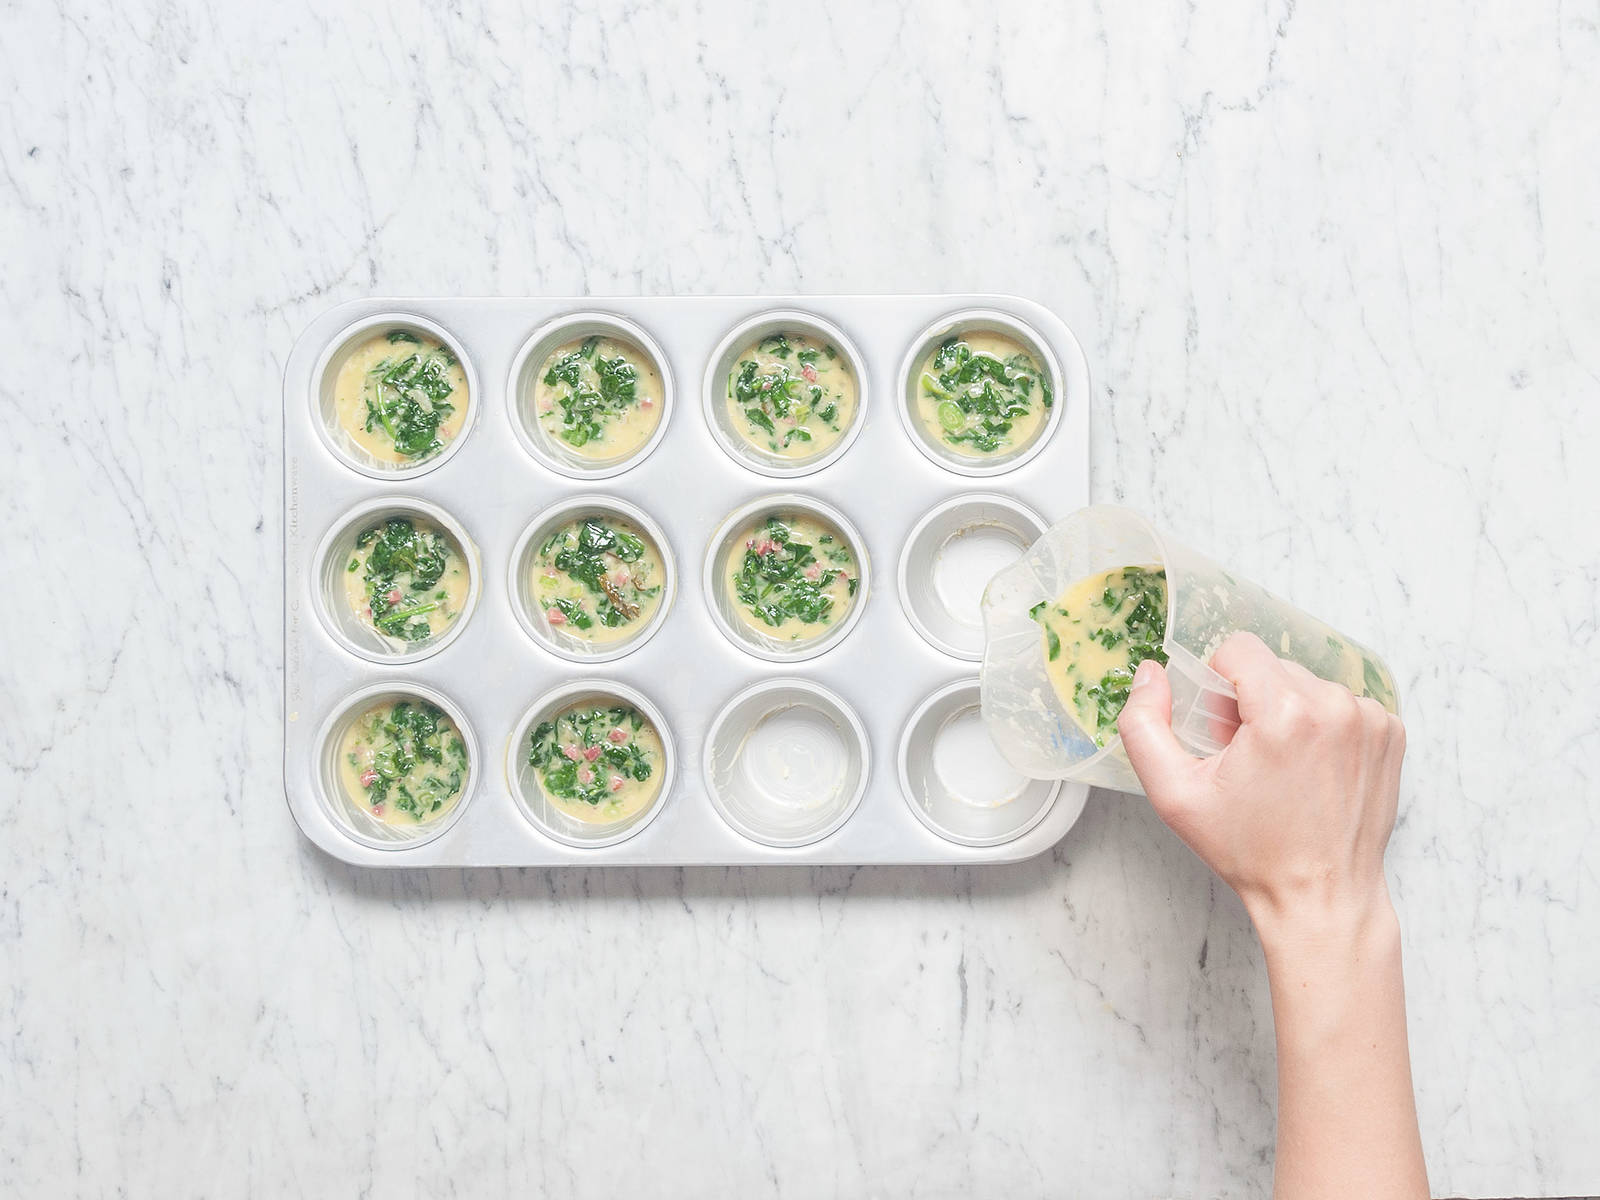 Add spinach mixture and grated Parmesan cheese to egg mixture and stir to combine. Grease muffin cups with butter and spoon mixture into muffin cups.